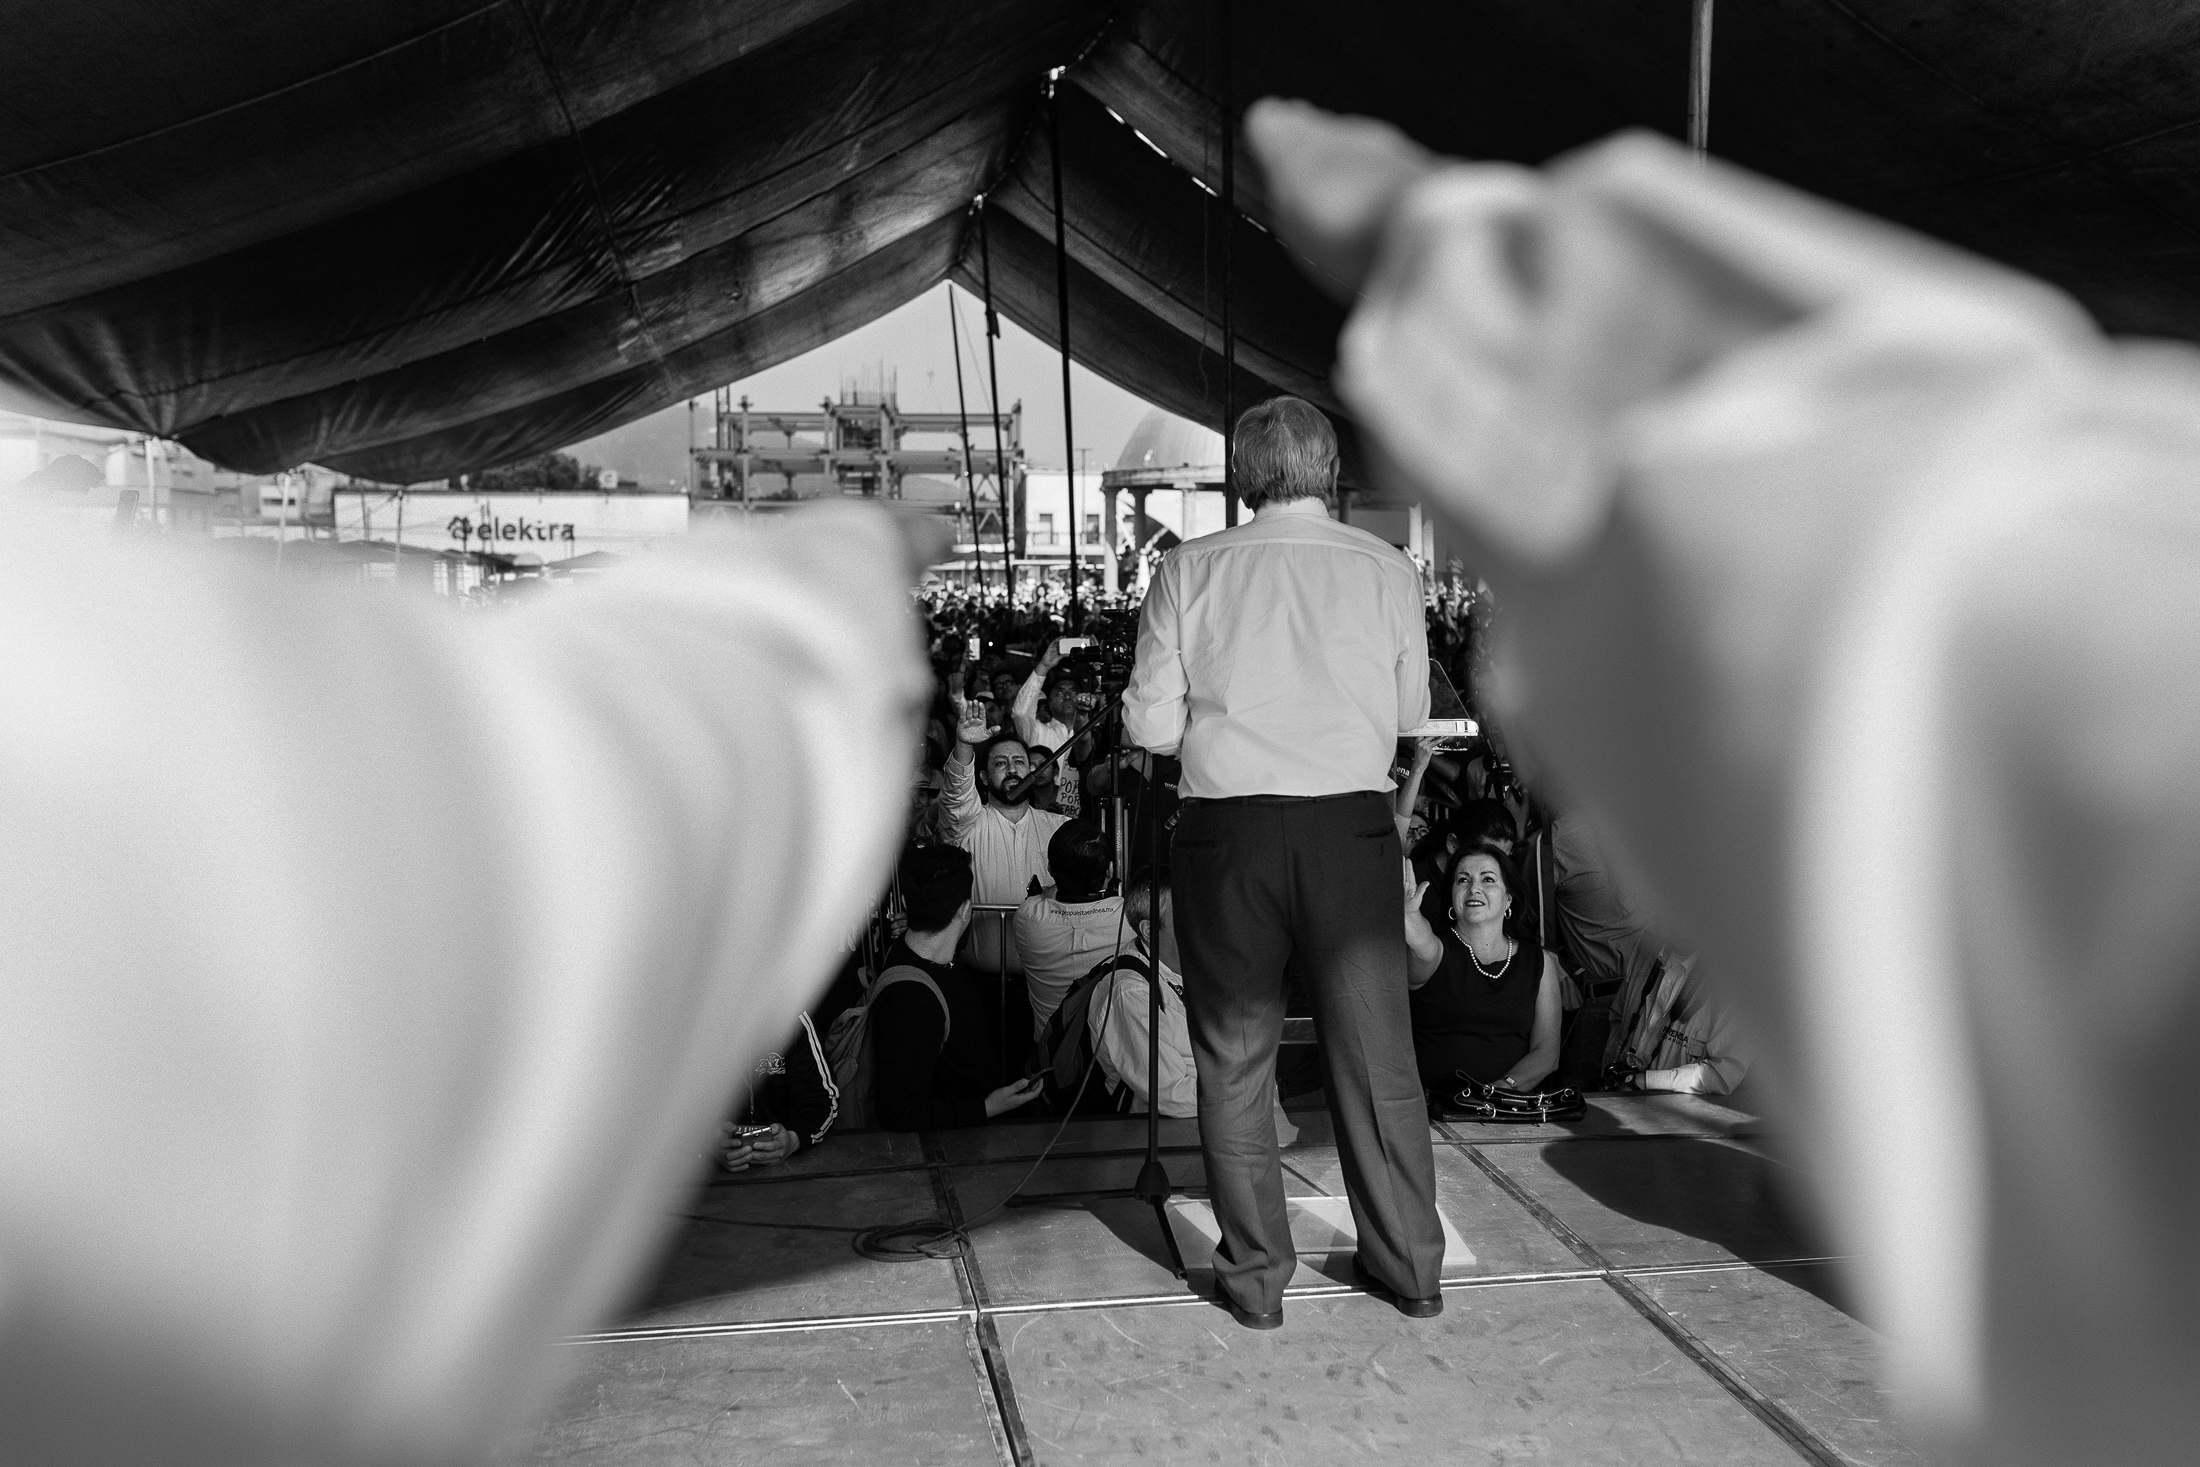 Art and Documentary Photography - Loading 15-20-amlo_180413-2318-r.jpg